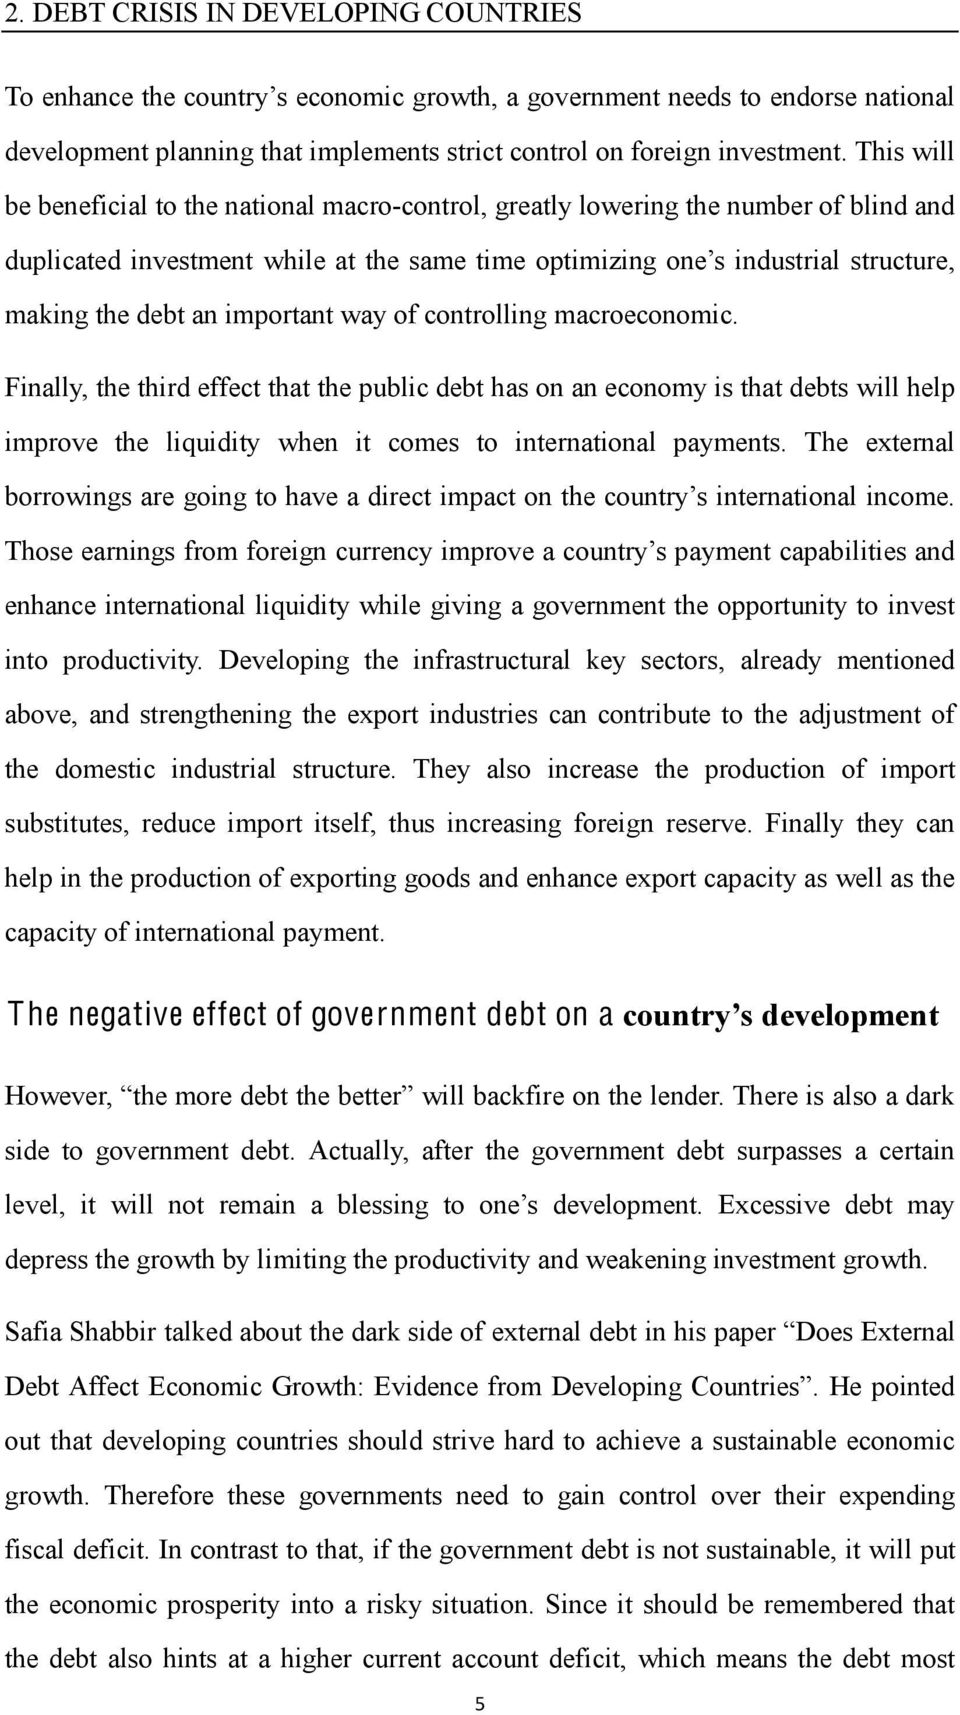 important way of controlling macroeconomic. Finally, the third effect that the public debt has on an economy is that debts will help improve the liquidity when it comes to international payments.